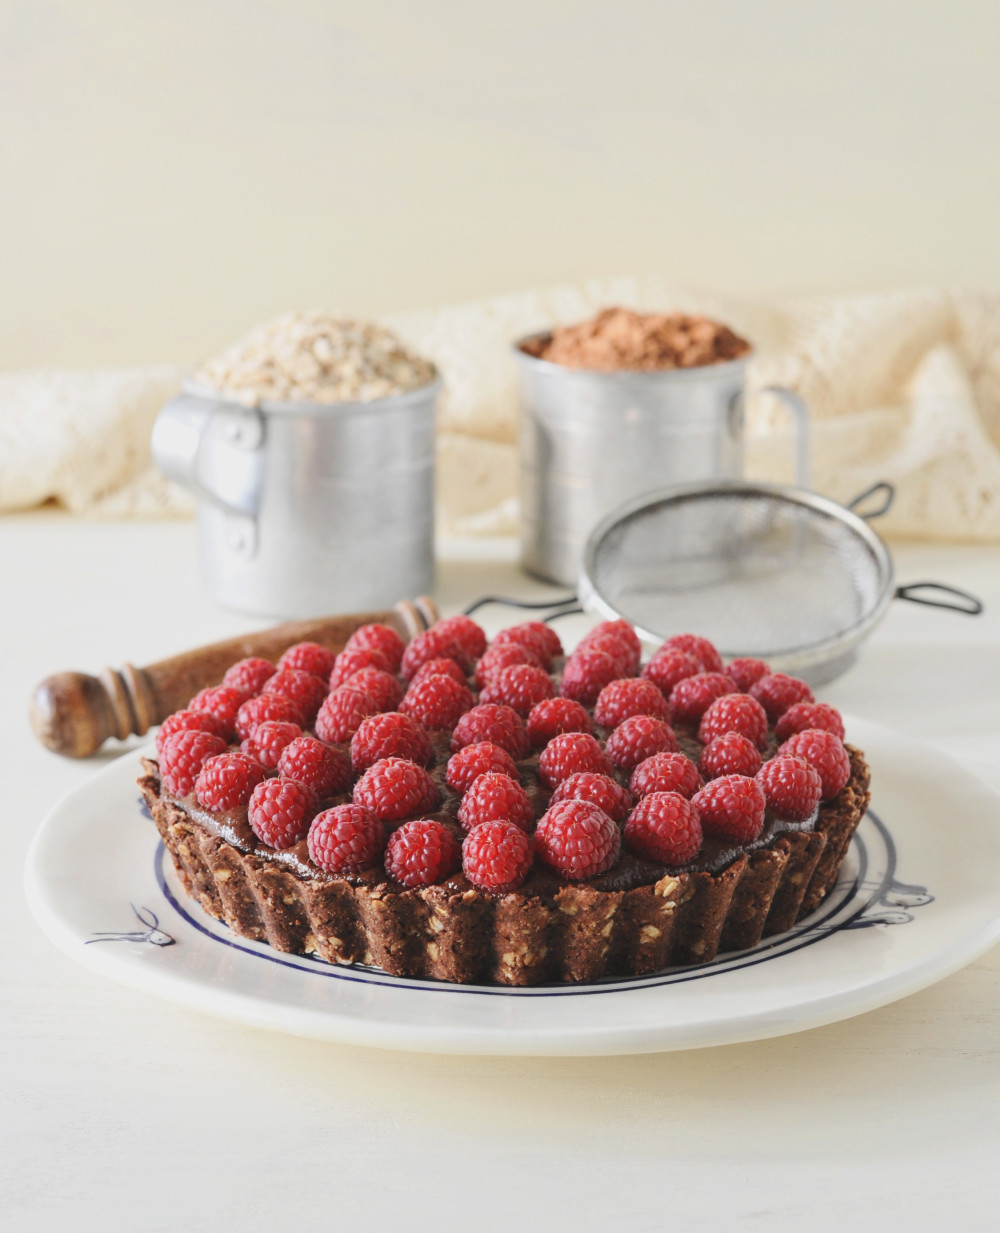 Chocolate Berry Tart from 'Whole Grain Vegan Baking'  Photo by Celine Steen